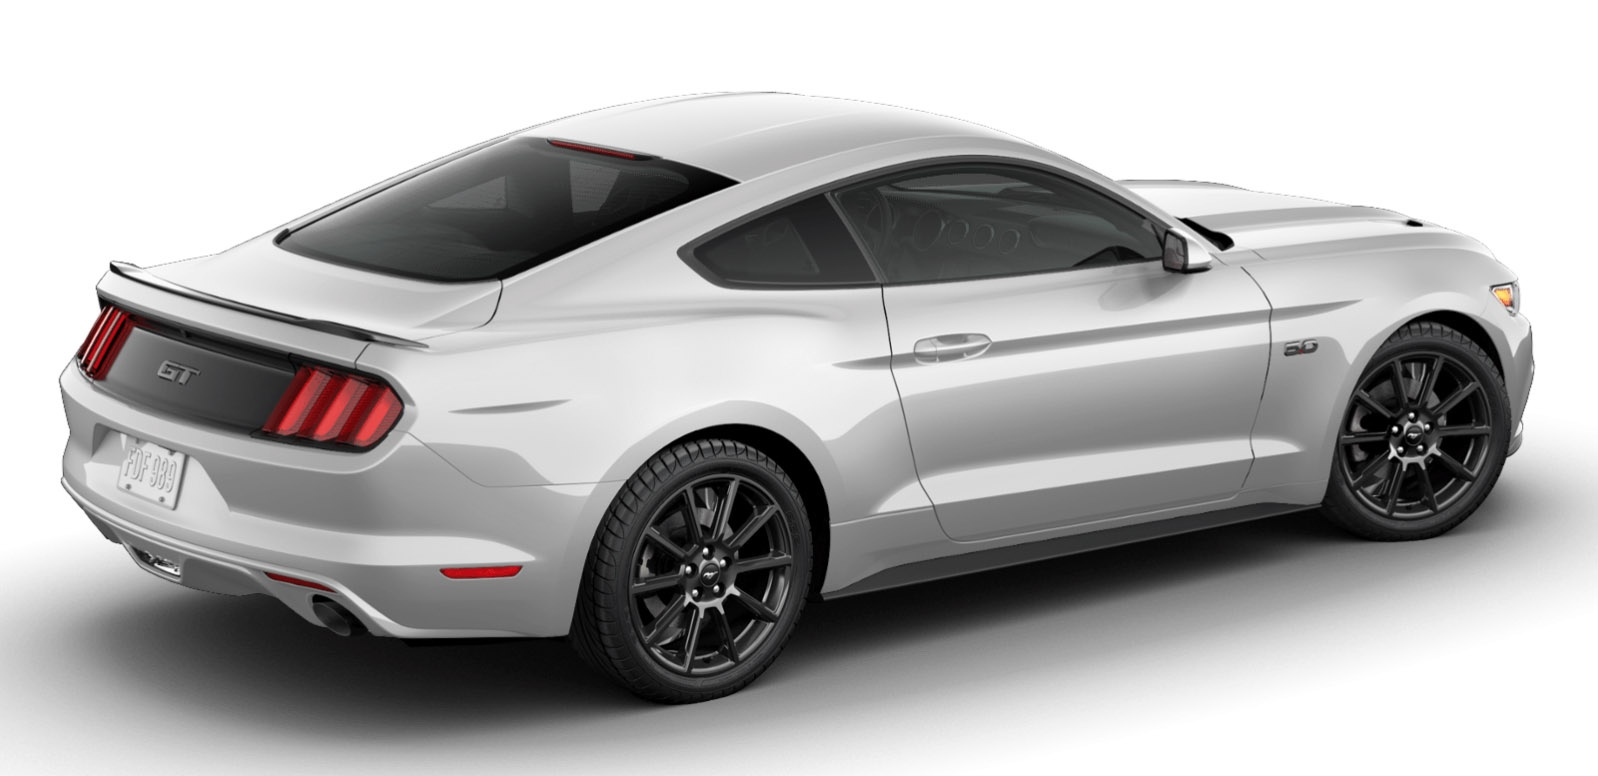 Ford mustang 2015 repair manual ford mustang 20132018 factory repair ford mustang repair manual pdf car autos gallery fandeluxe Image collections